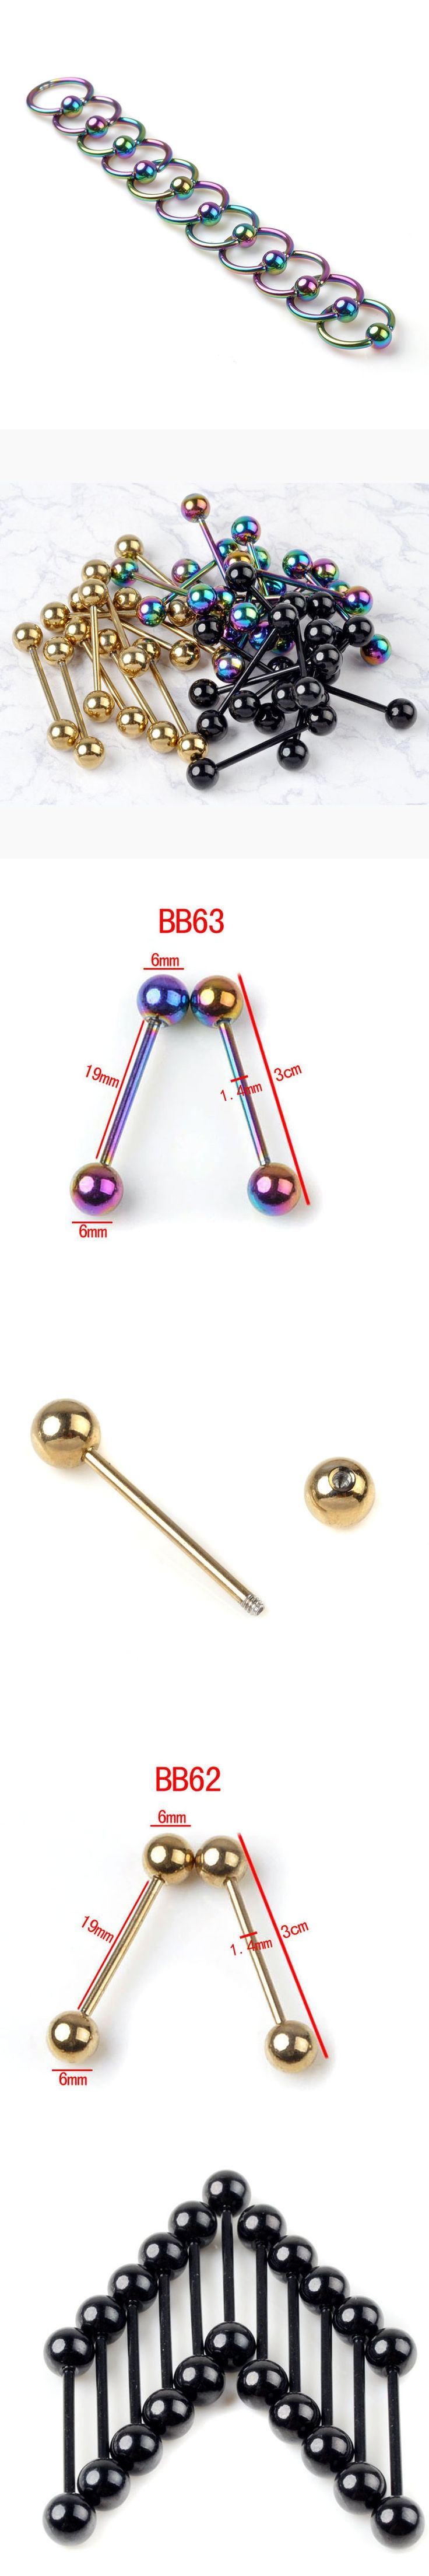 1 Piece Stainless Steel Curved Eyebrow Nose Lip Nipple Bead Ring Tongue Piercings Punk Unisex Body Jewelry Wholesale